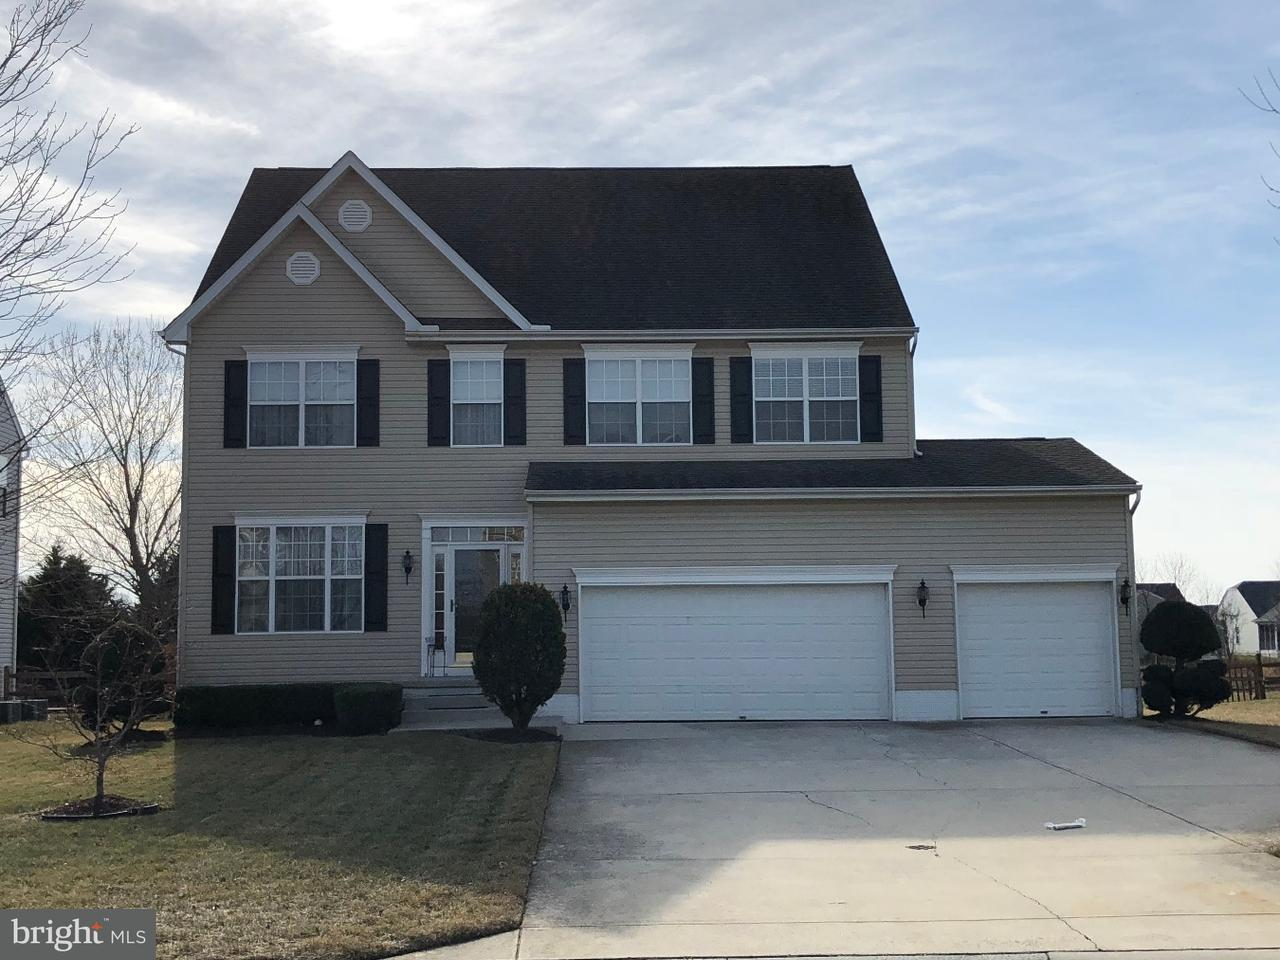 Single Family Home for Sale at 1182 W BIRDIE Lane Magnolia, Delaware 19962 United States